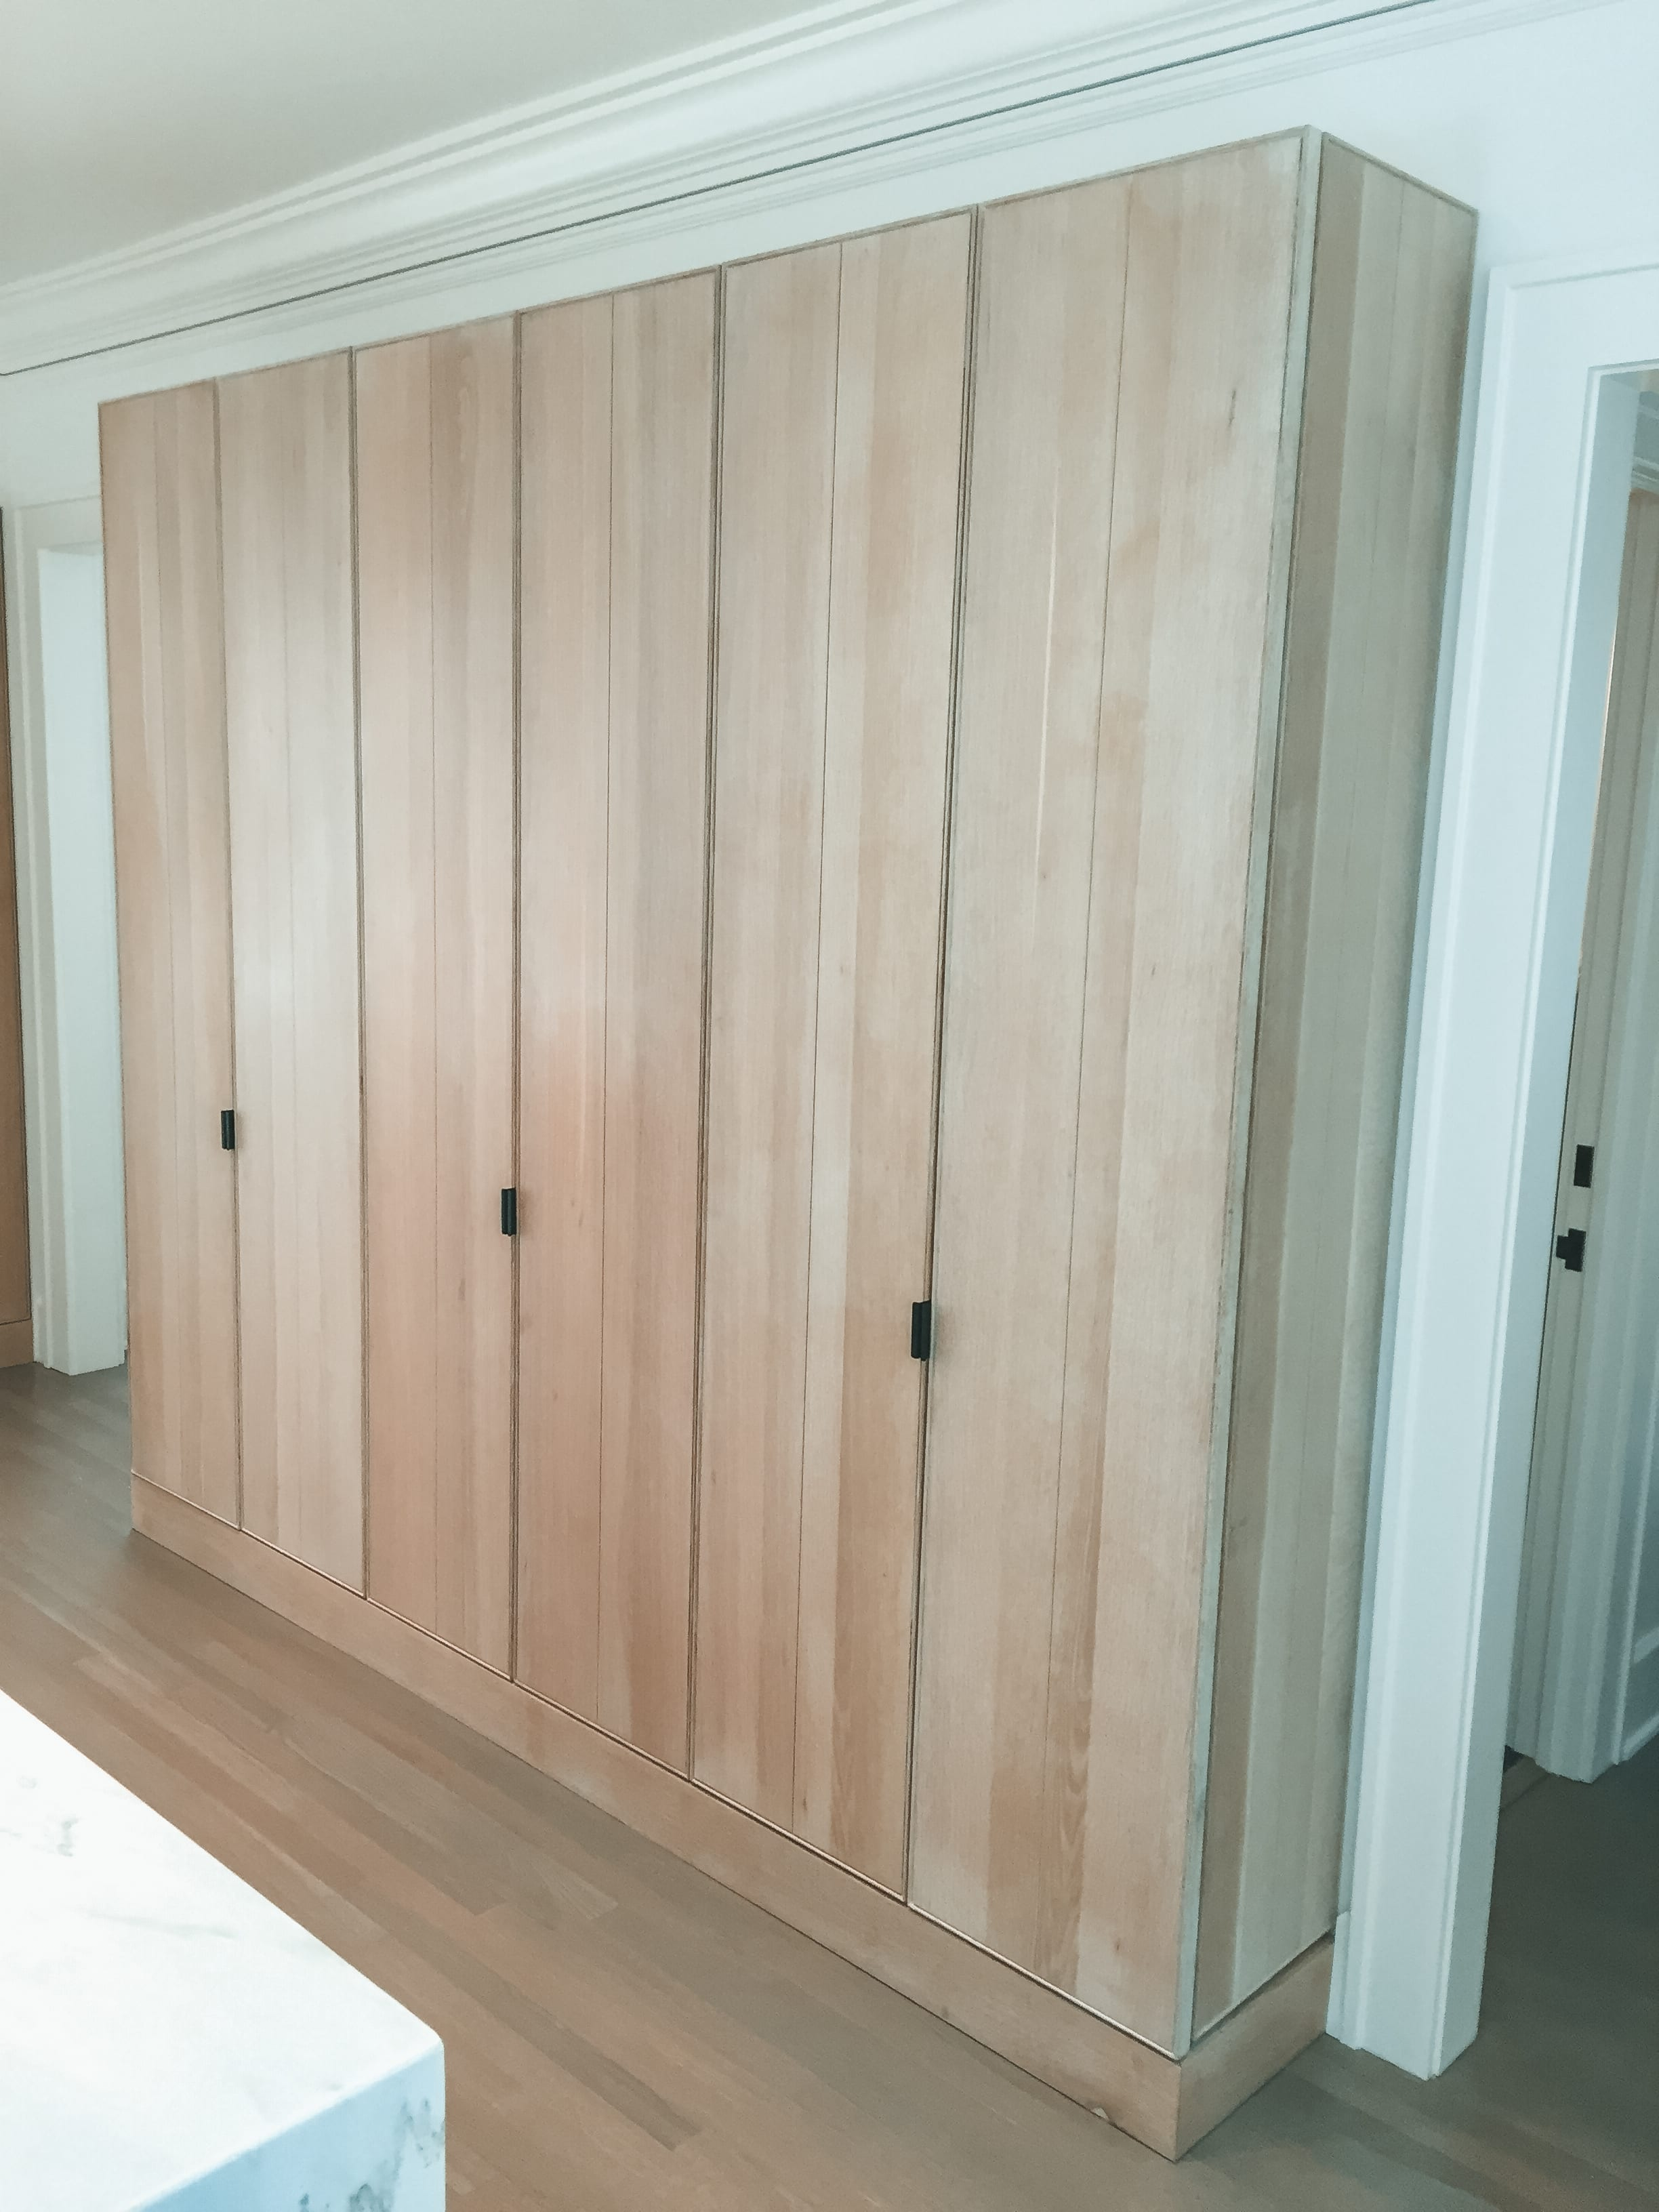 Simple White Oak Kitchen Storage Cabinets